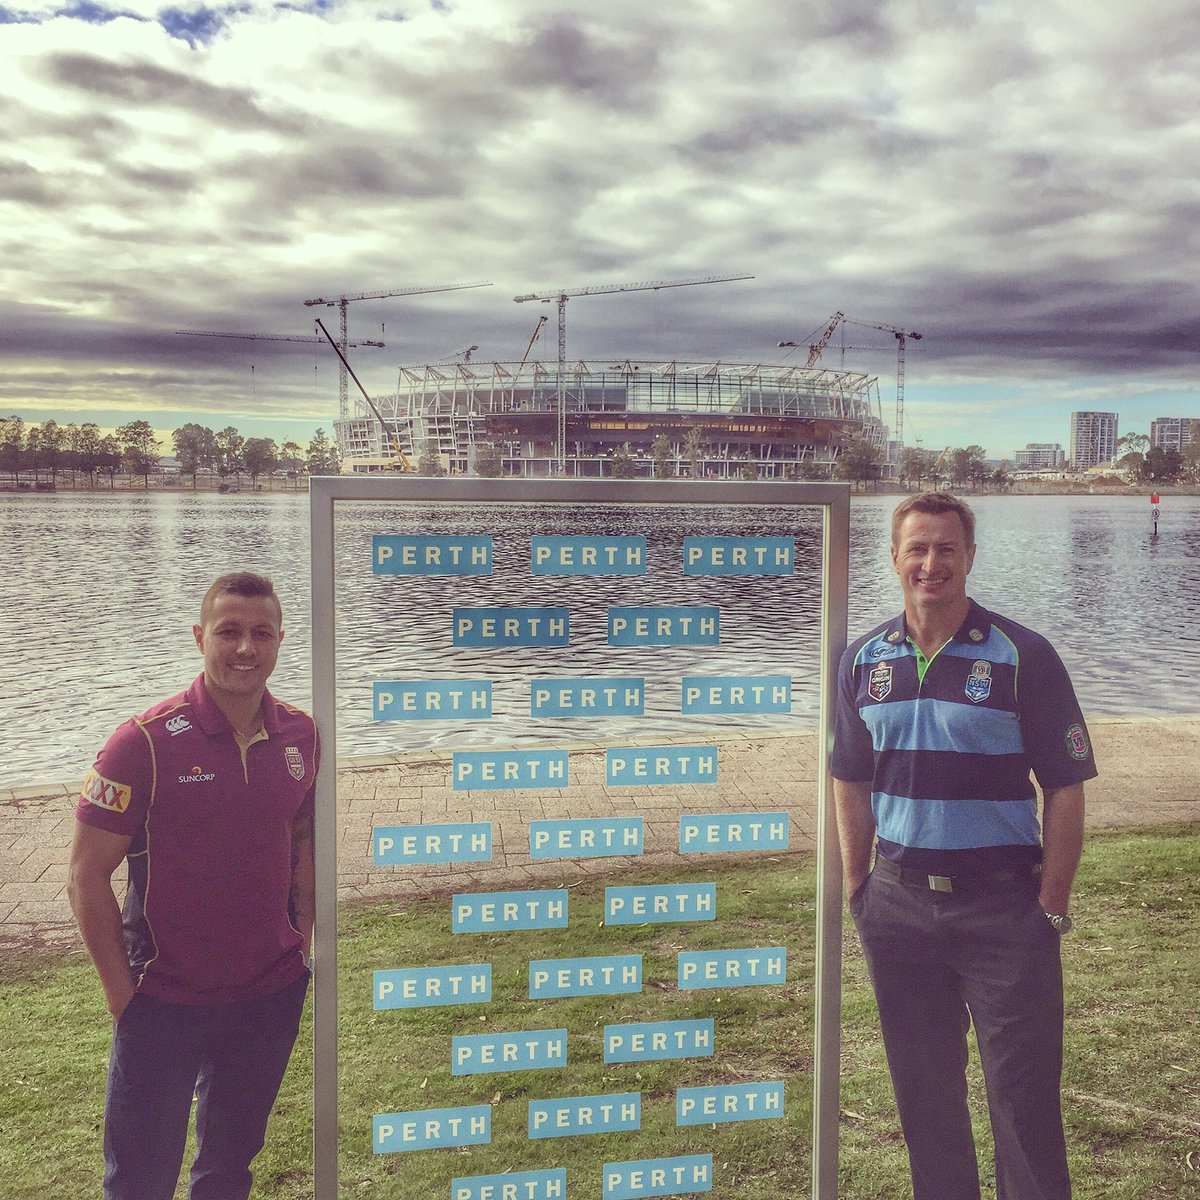 Proud to part of the huge announcement by the @nrl to take the 2019 State Of Origin Game 2 to Perth! #QLDER #Origin https://t.co/ezTOO7UpIV